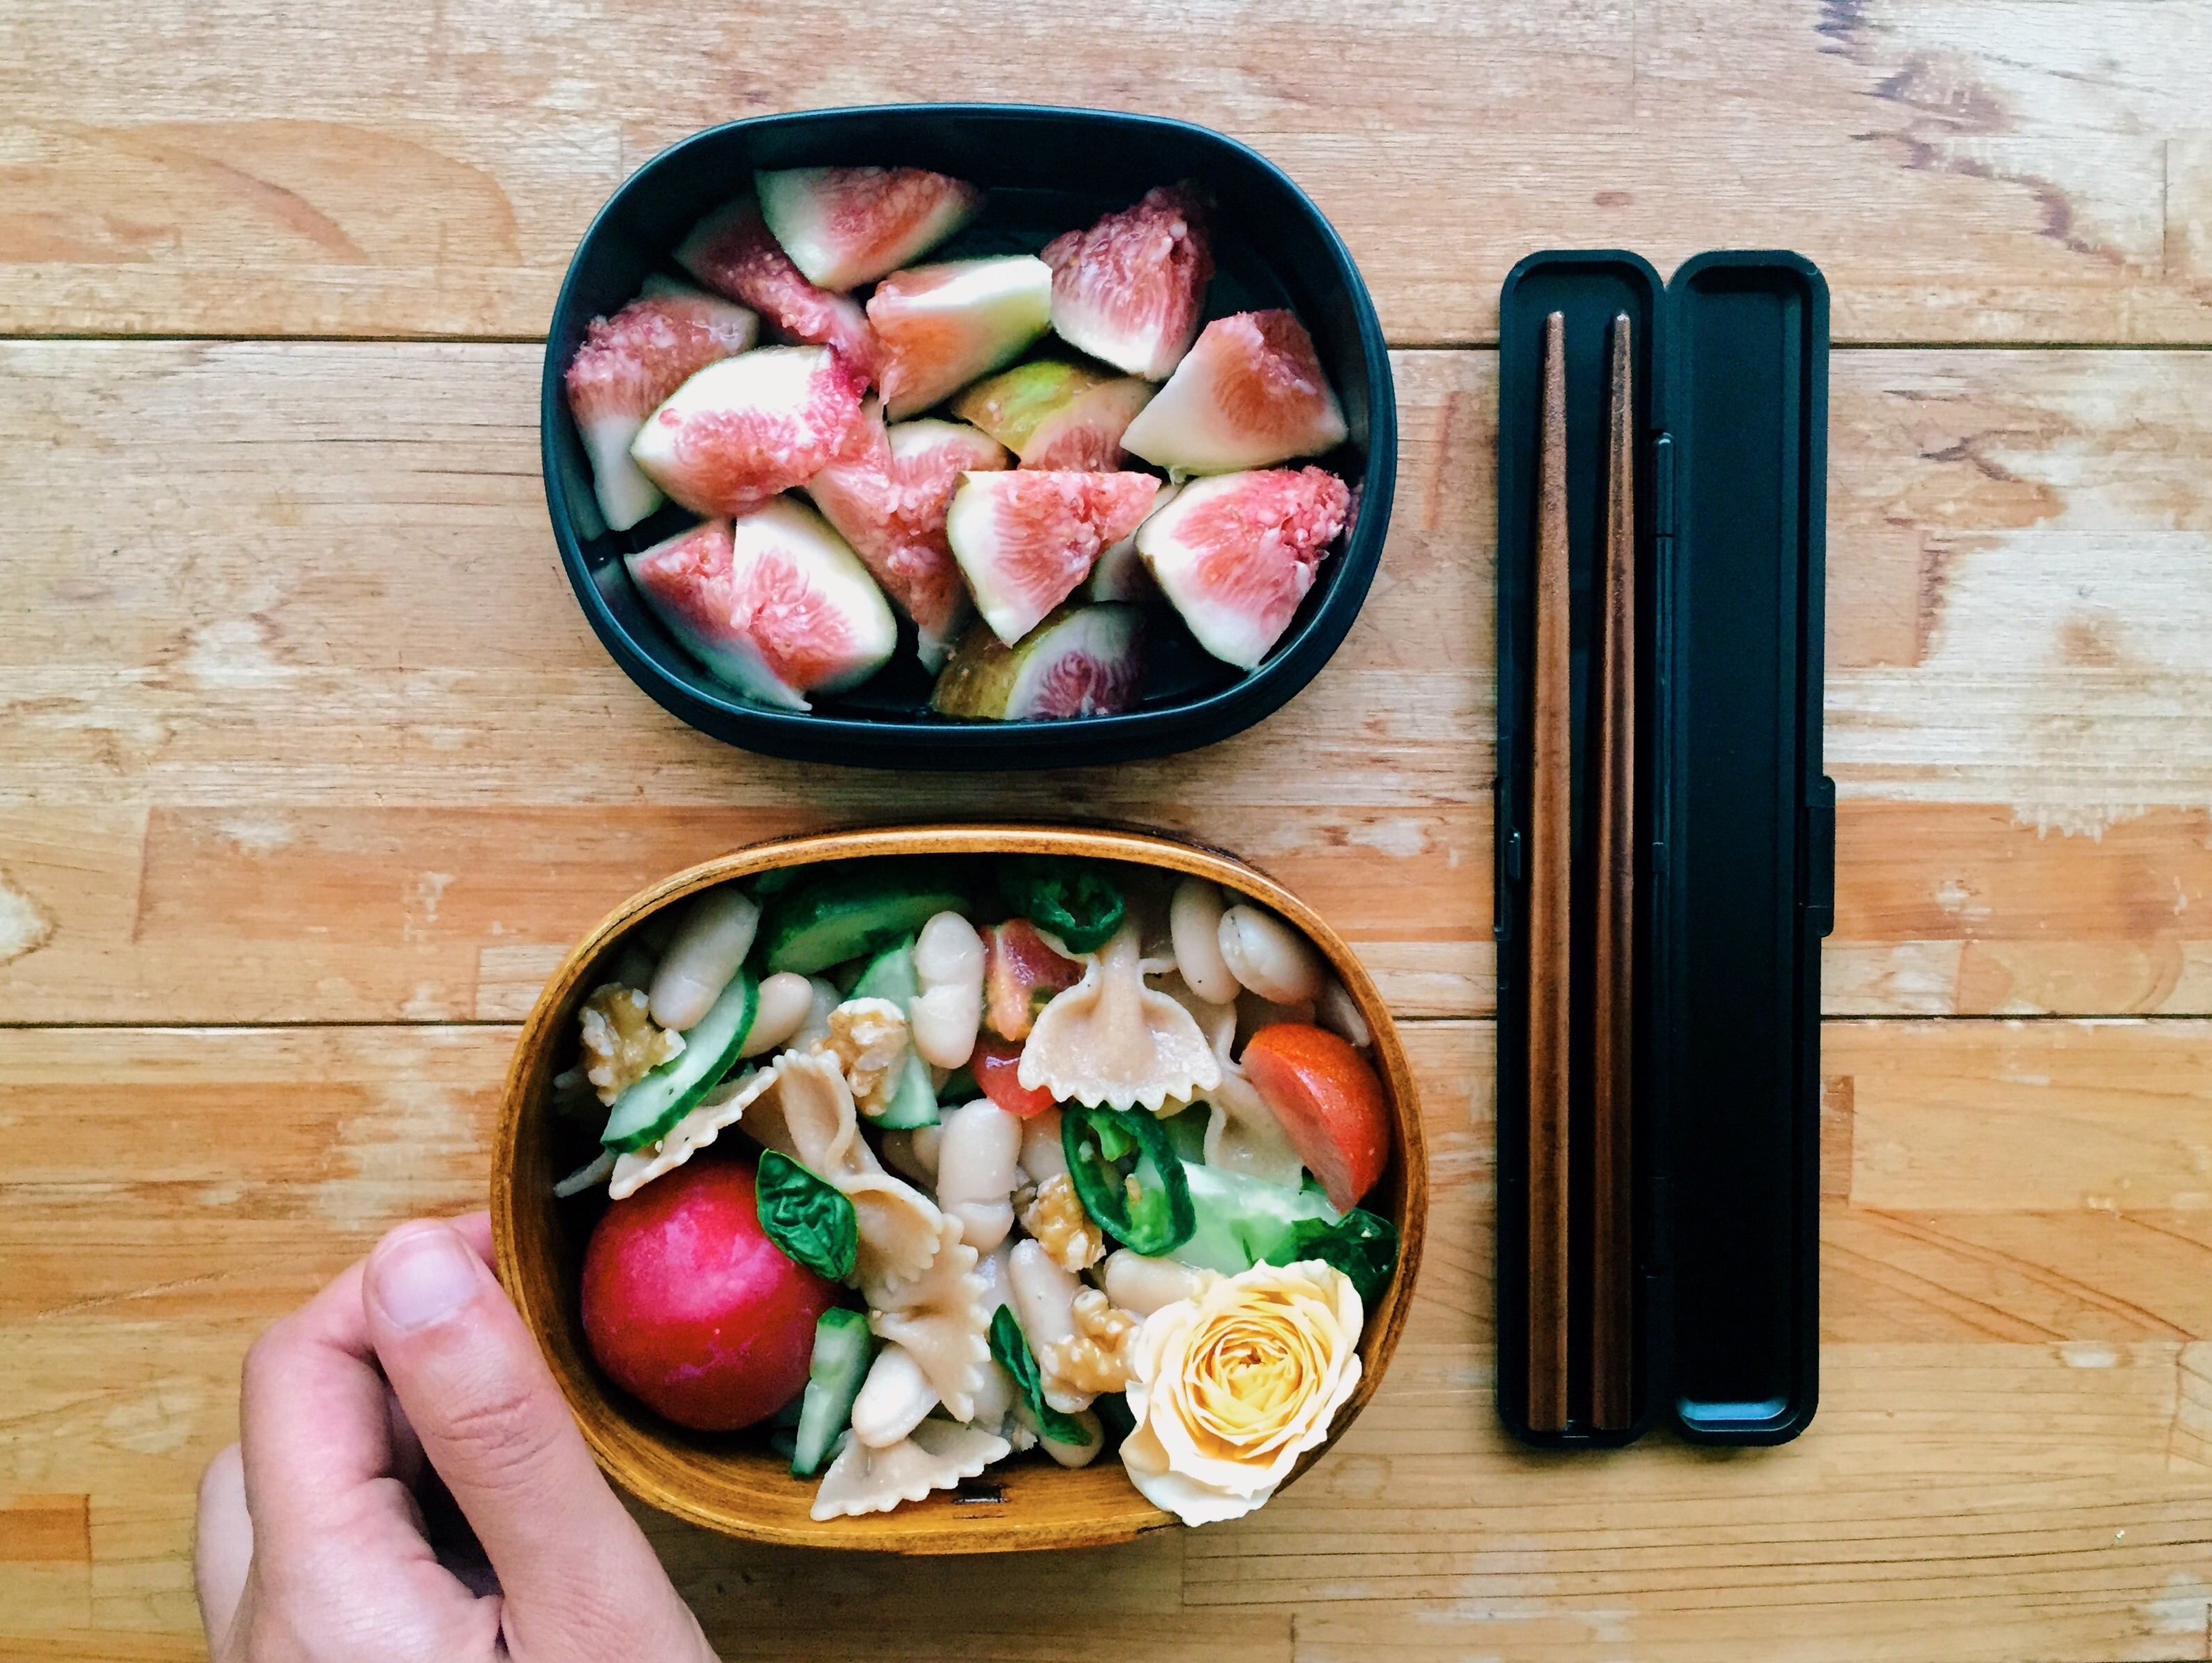 Use a variety of colors and textures to make your bento pop